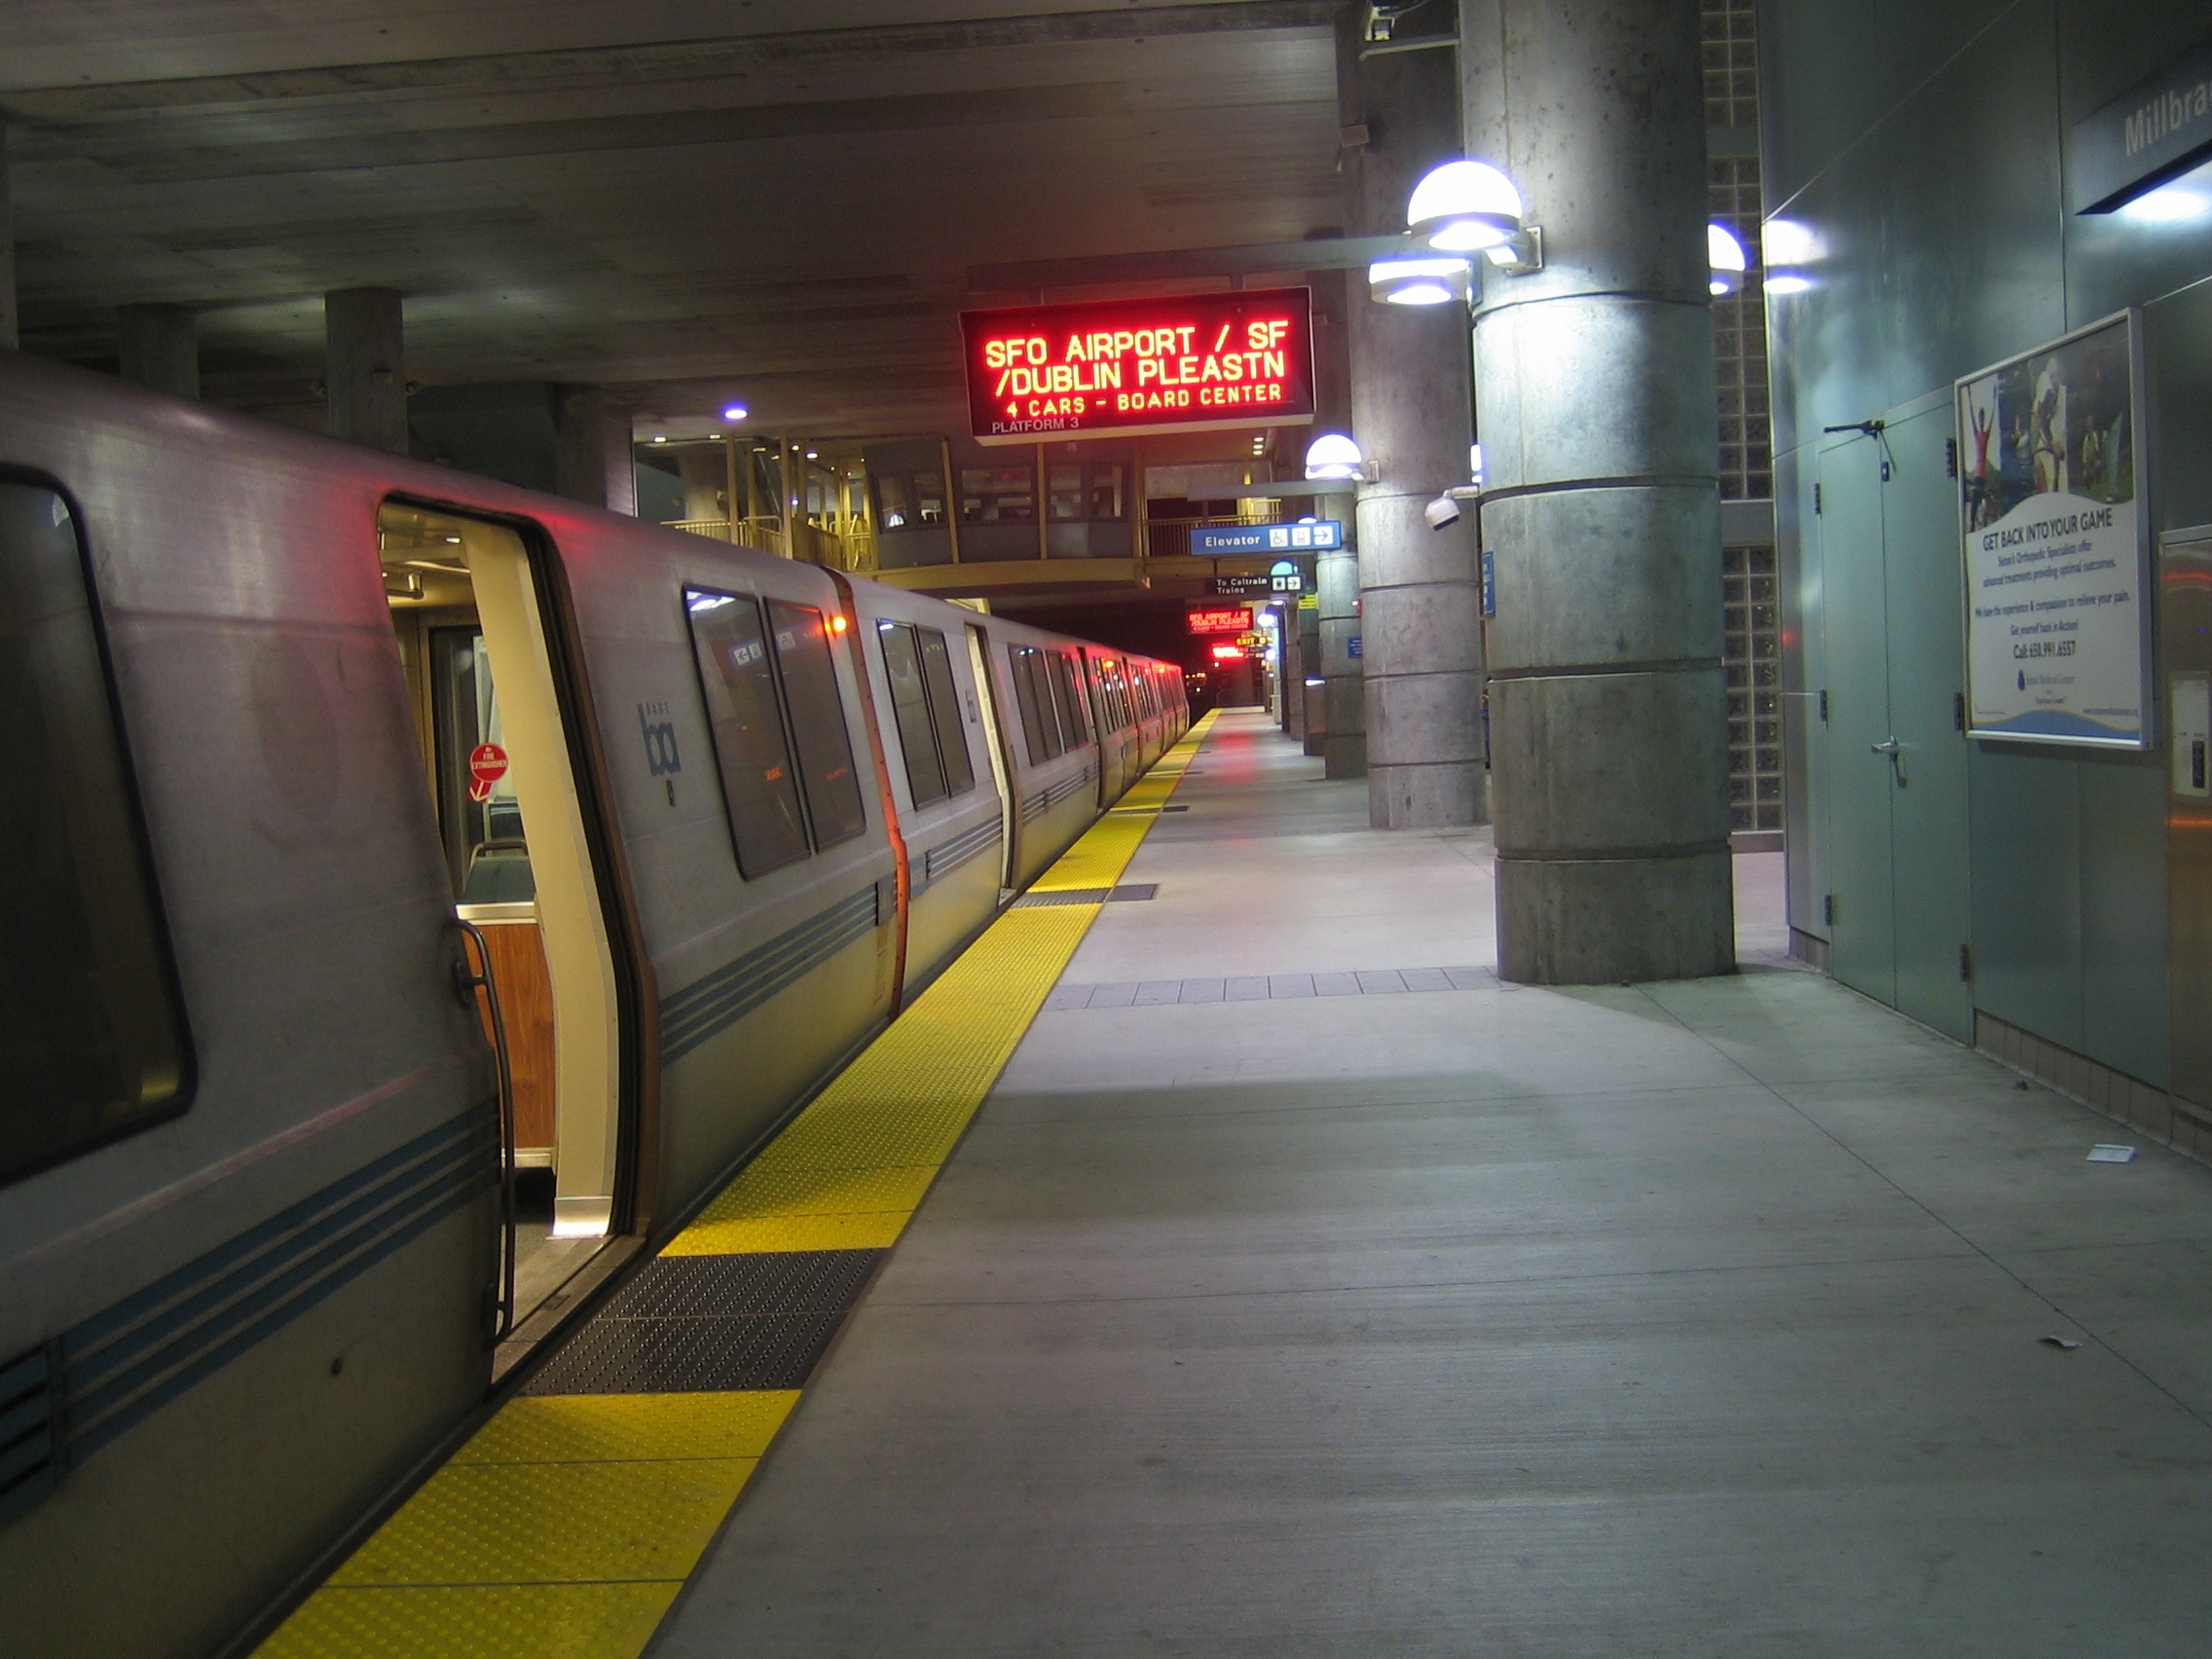 BART train heading for SFO Airport